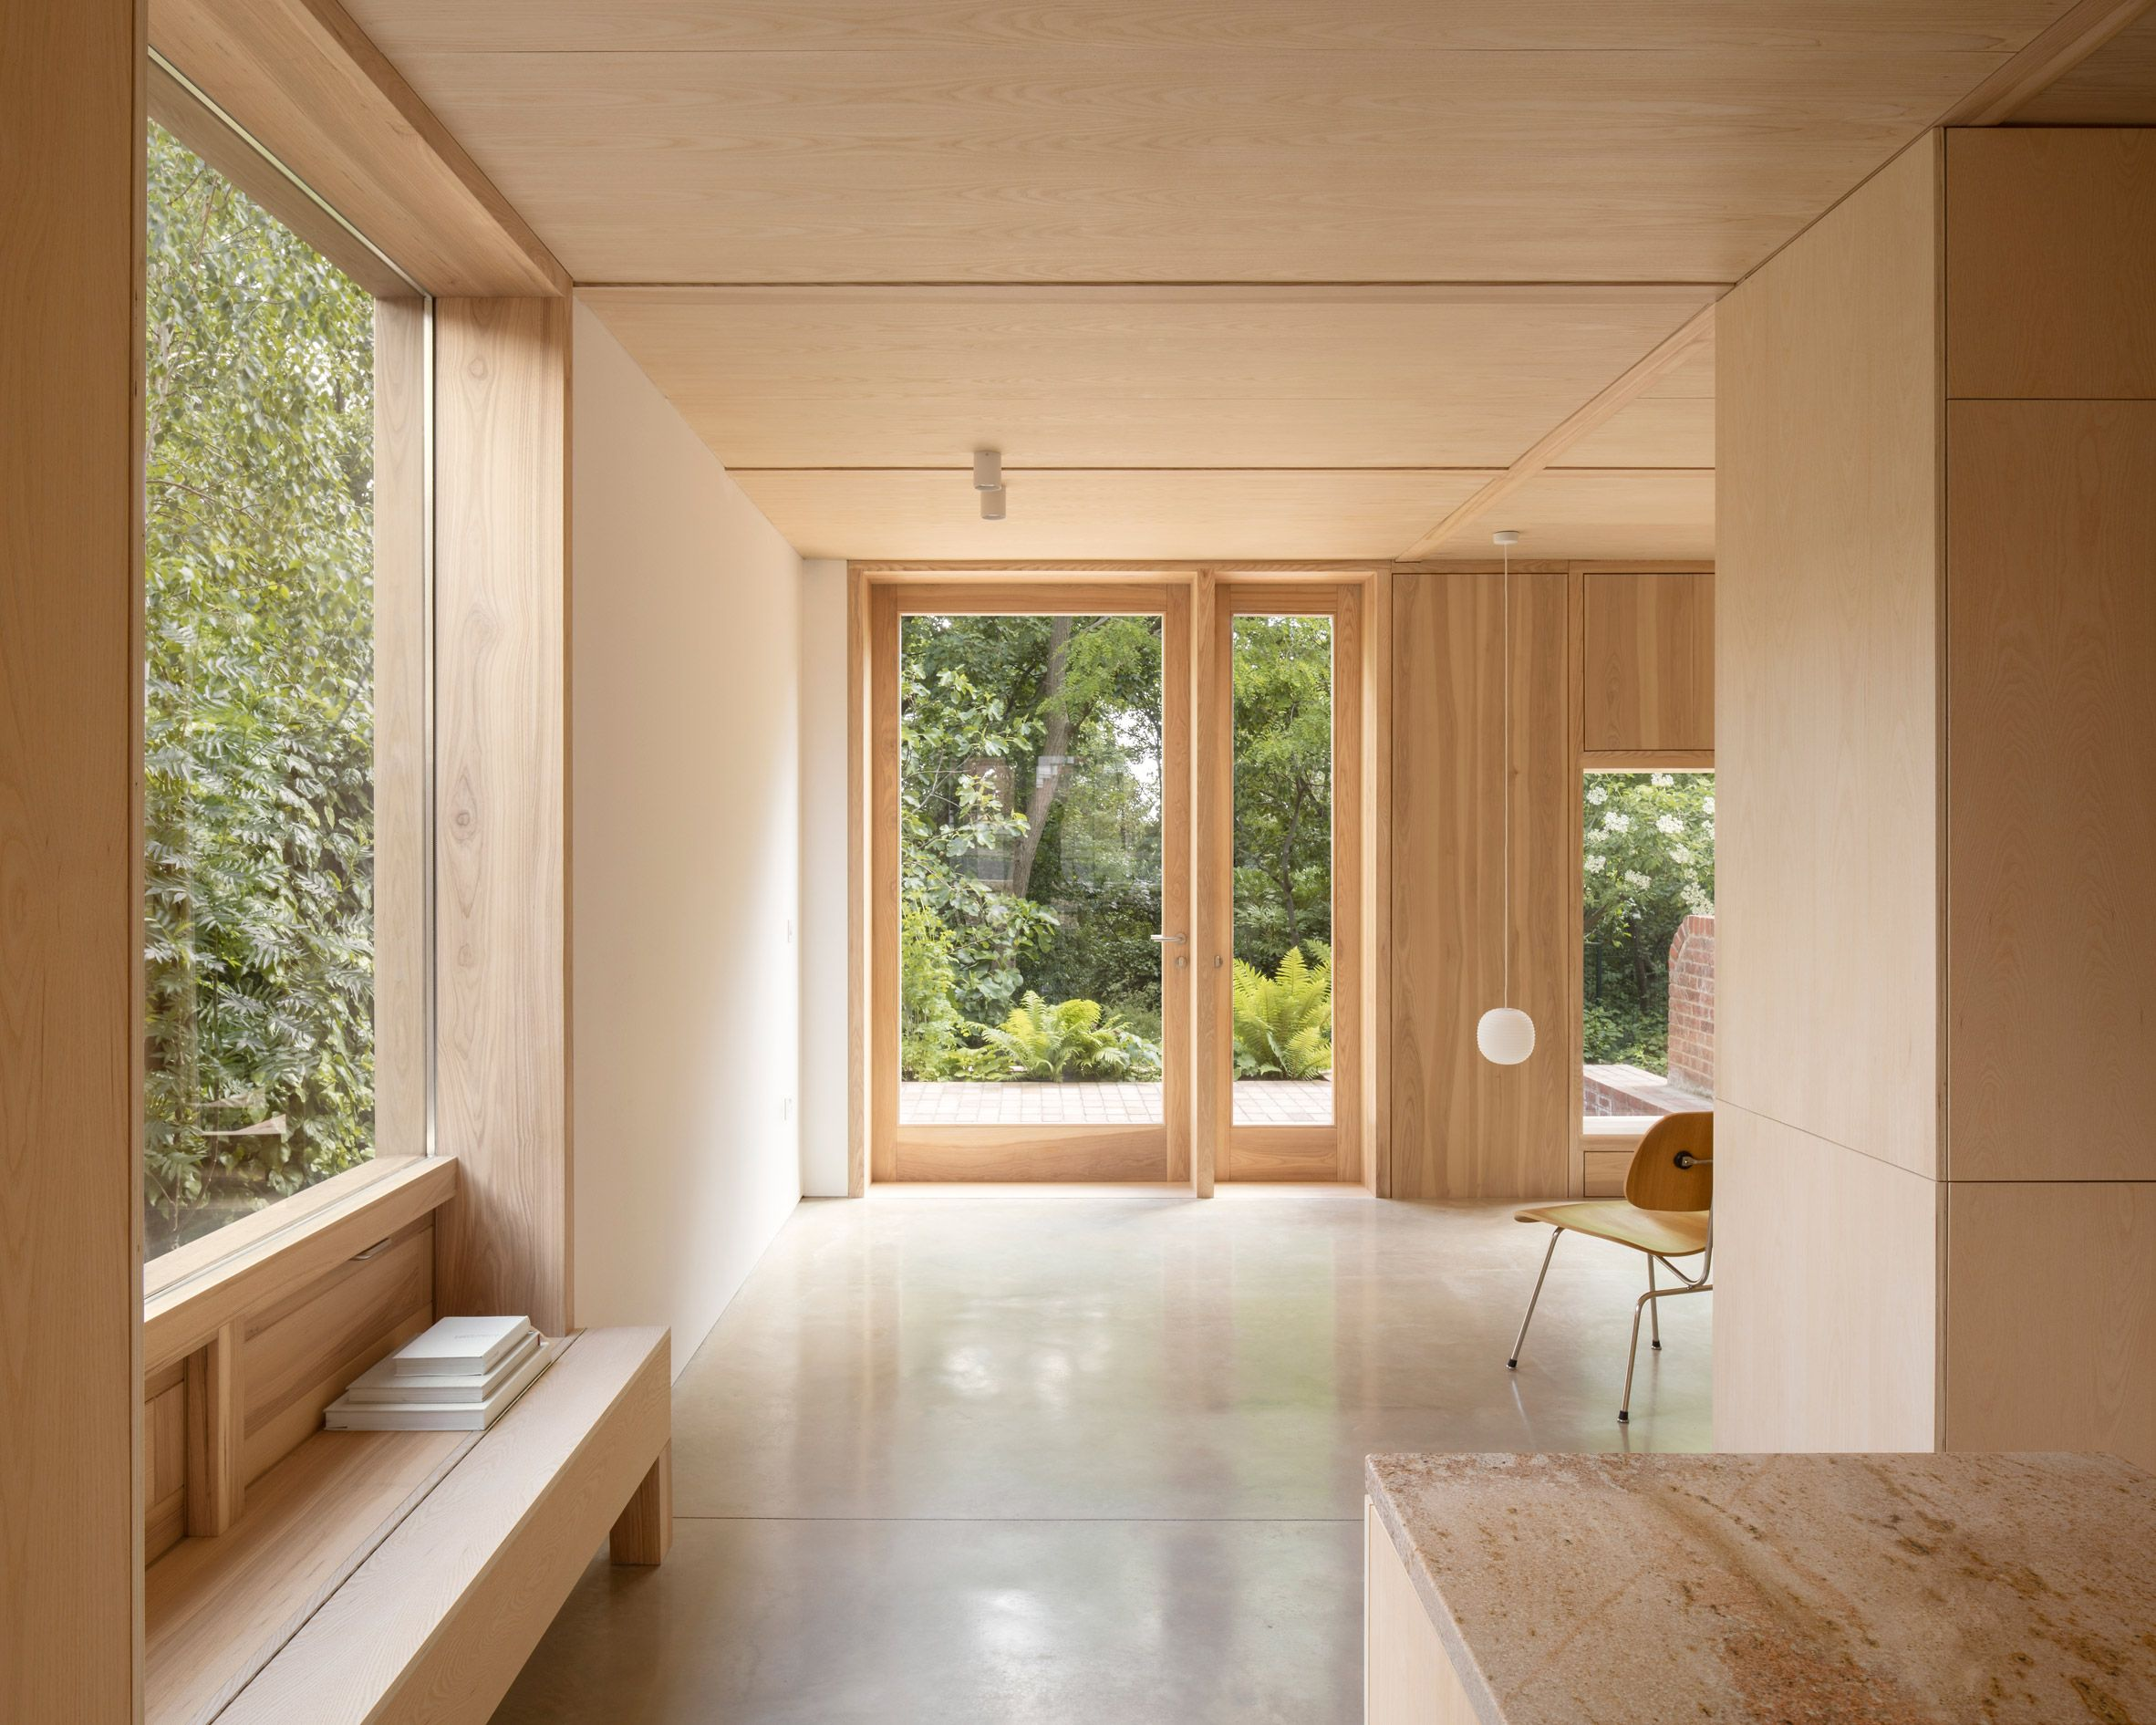 Grove Park is a wood-lined house by O'Sullivan Skoufoglou Architects